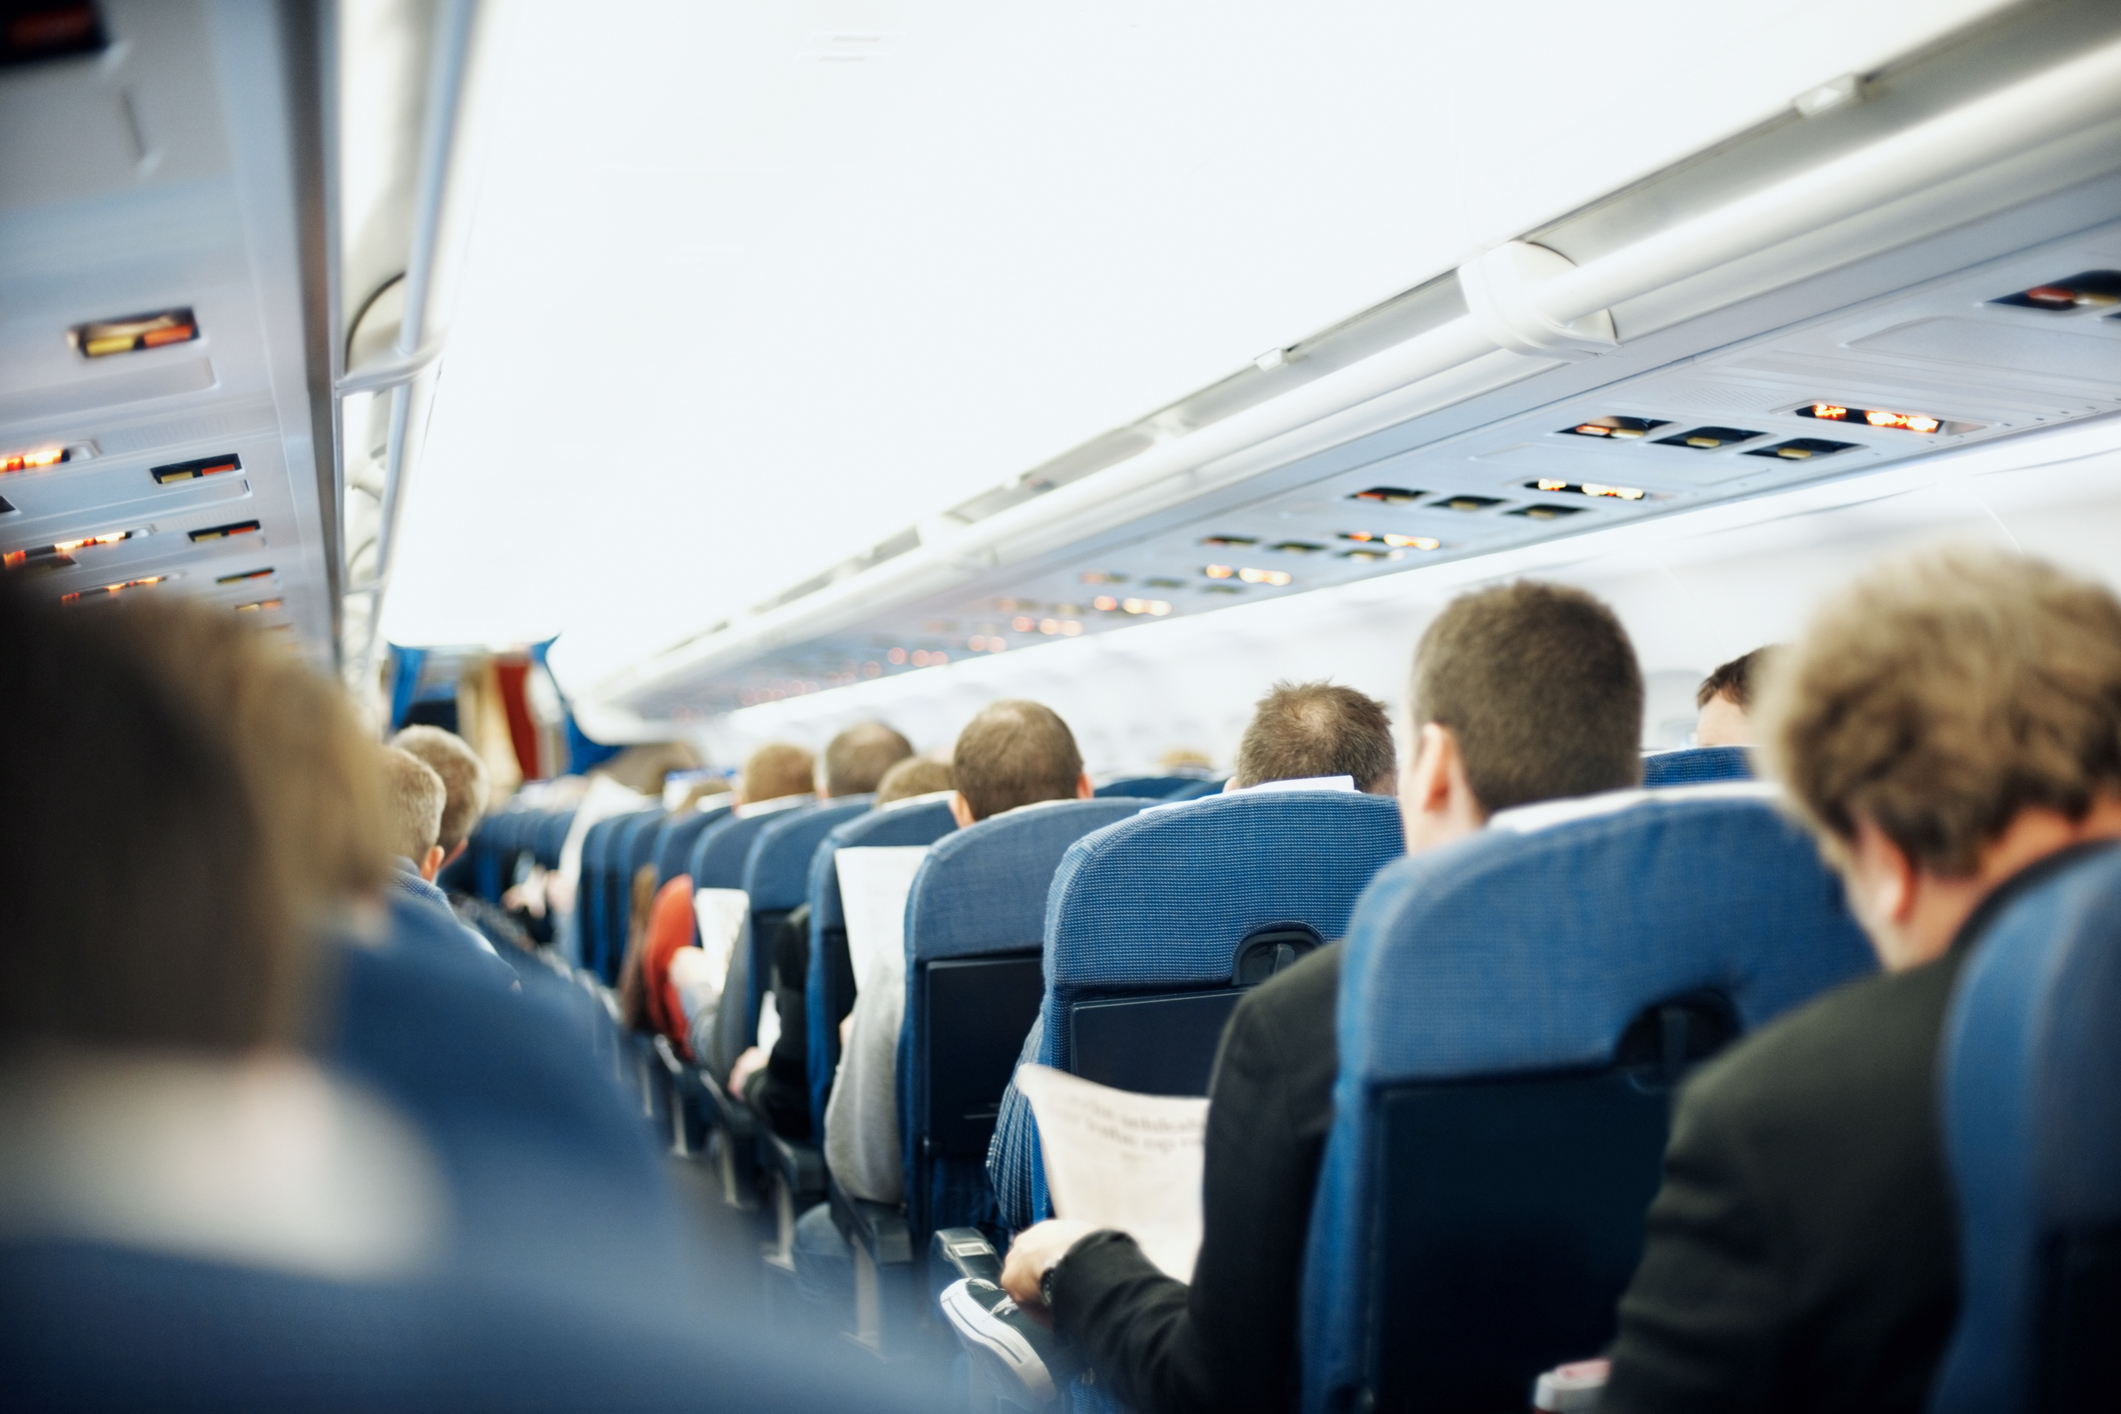 Aisle with group of passengers in an irplane